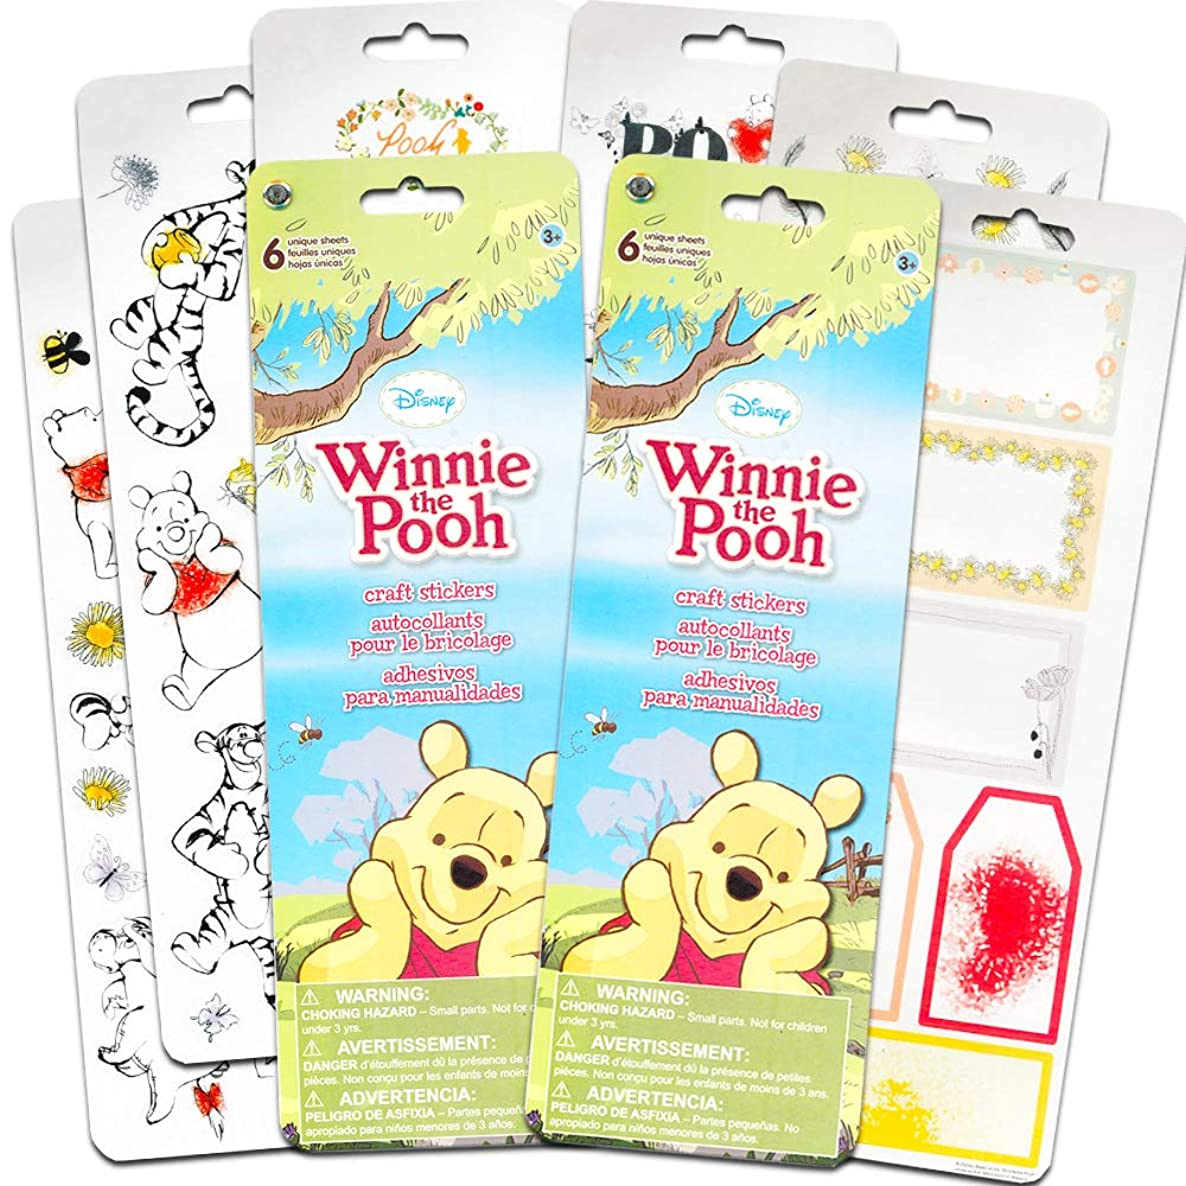 Disney Winnie the Pooh Stickers for Scrapbooking, Decorations, Arts and Crafts ~ Over 100 Premium Winnie the Pooh Stickers (Set of 2 Sticker Packs)